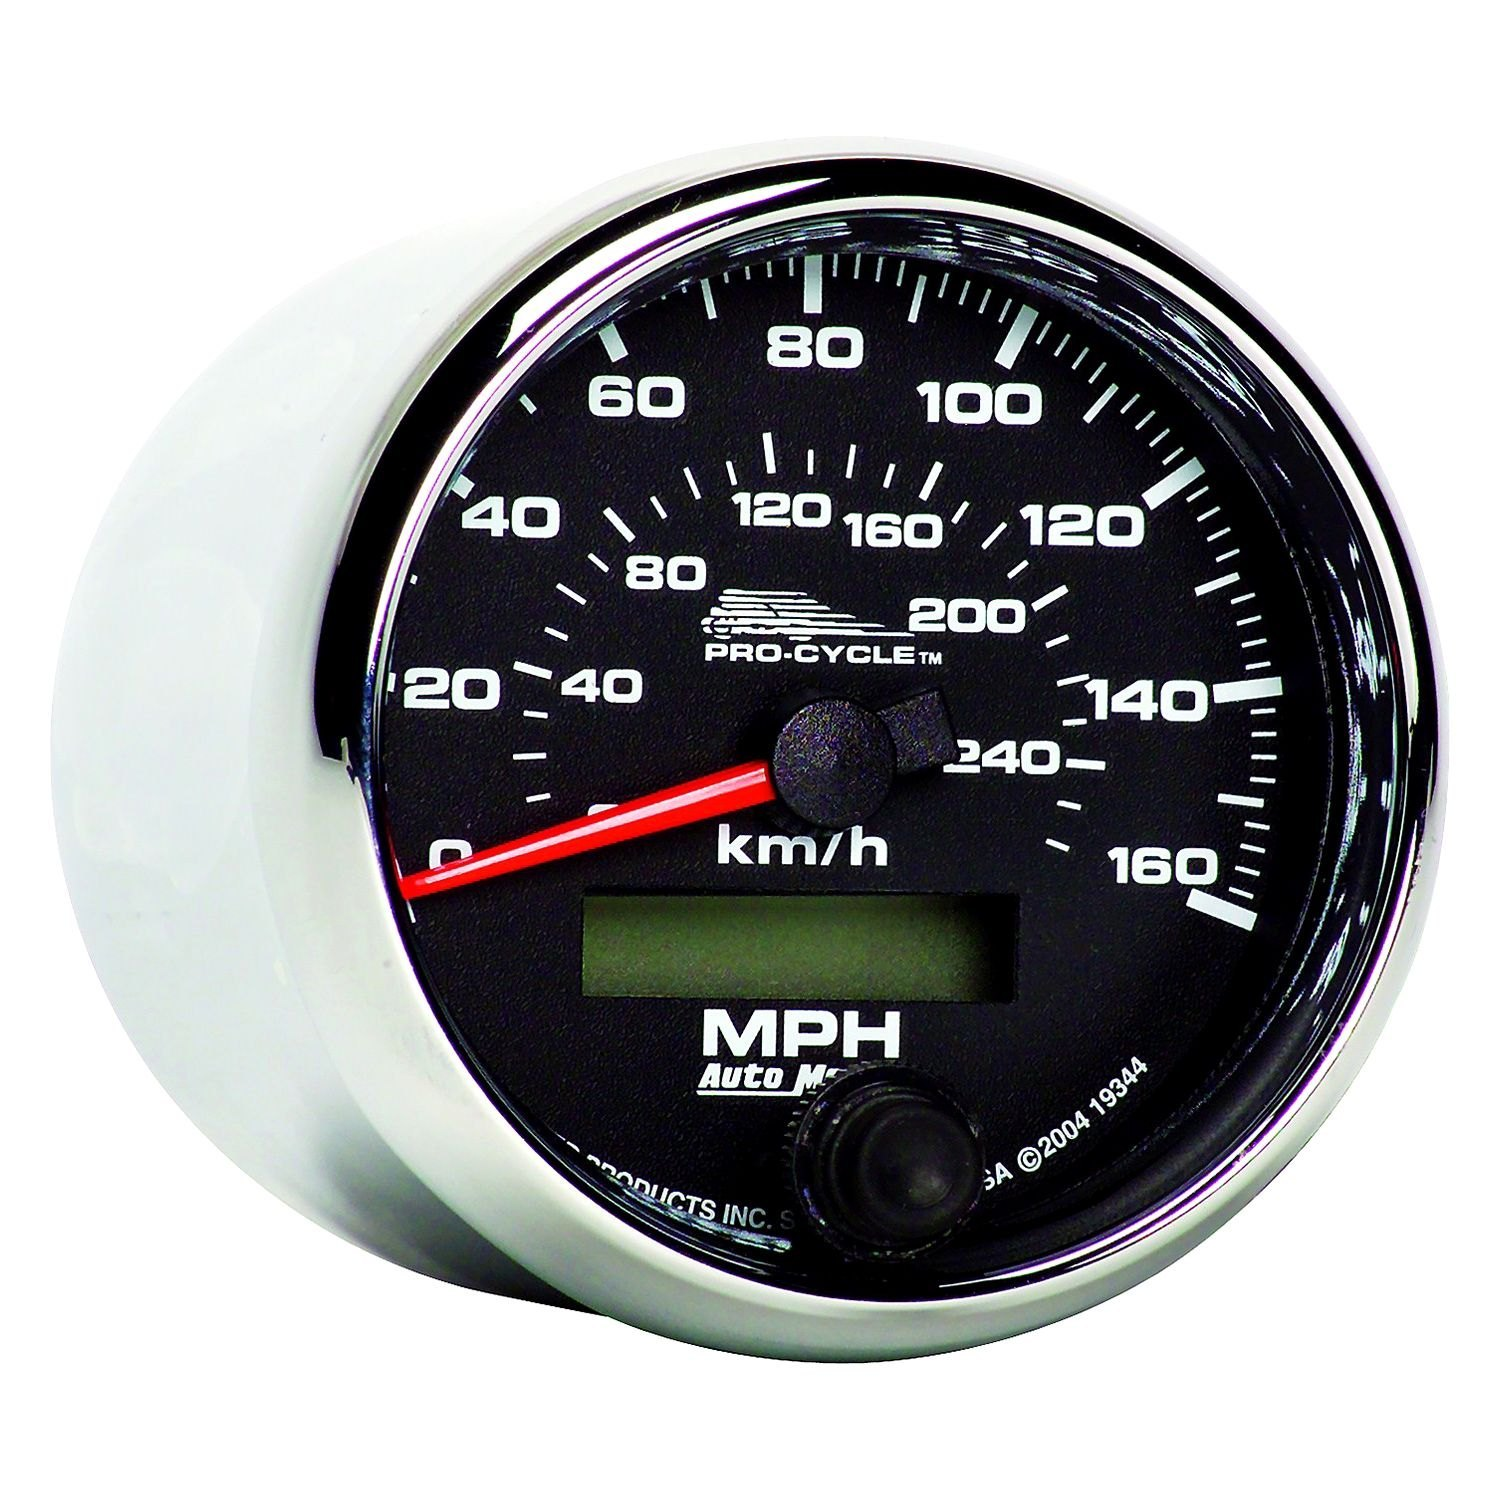 Auto Meter Tach Wiring Pro Cycle Reveolution Of Diagram Sunpro Super Gauges P Ignition Ii Autogage